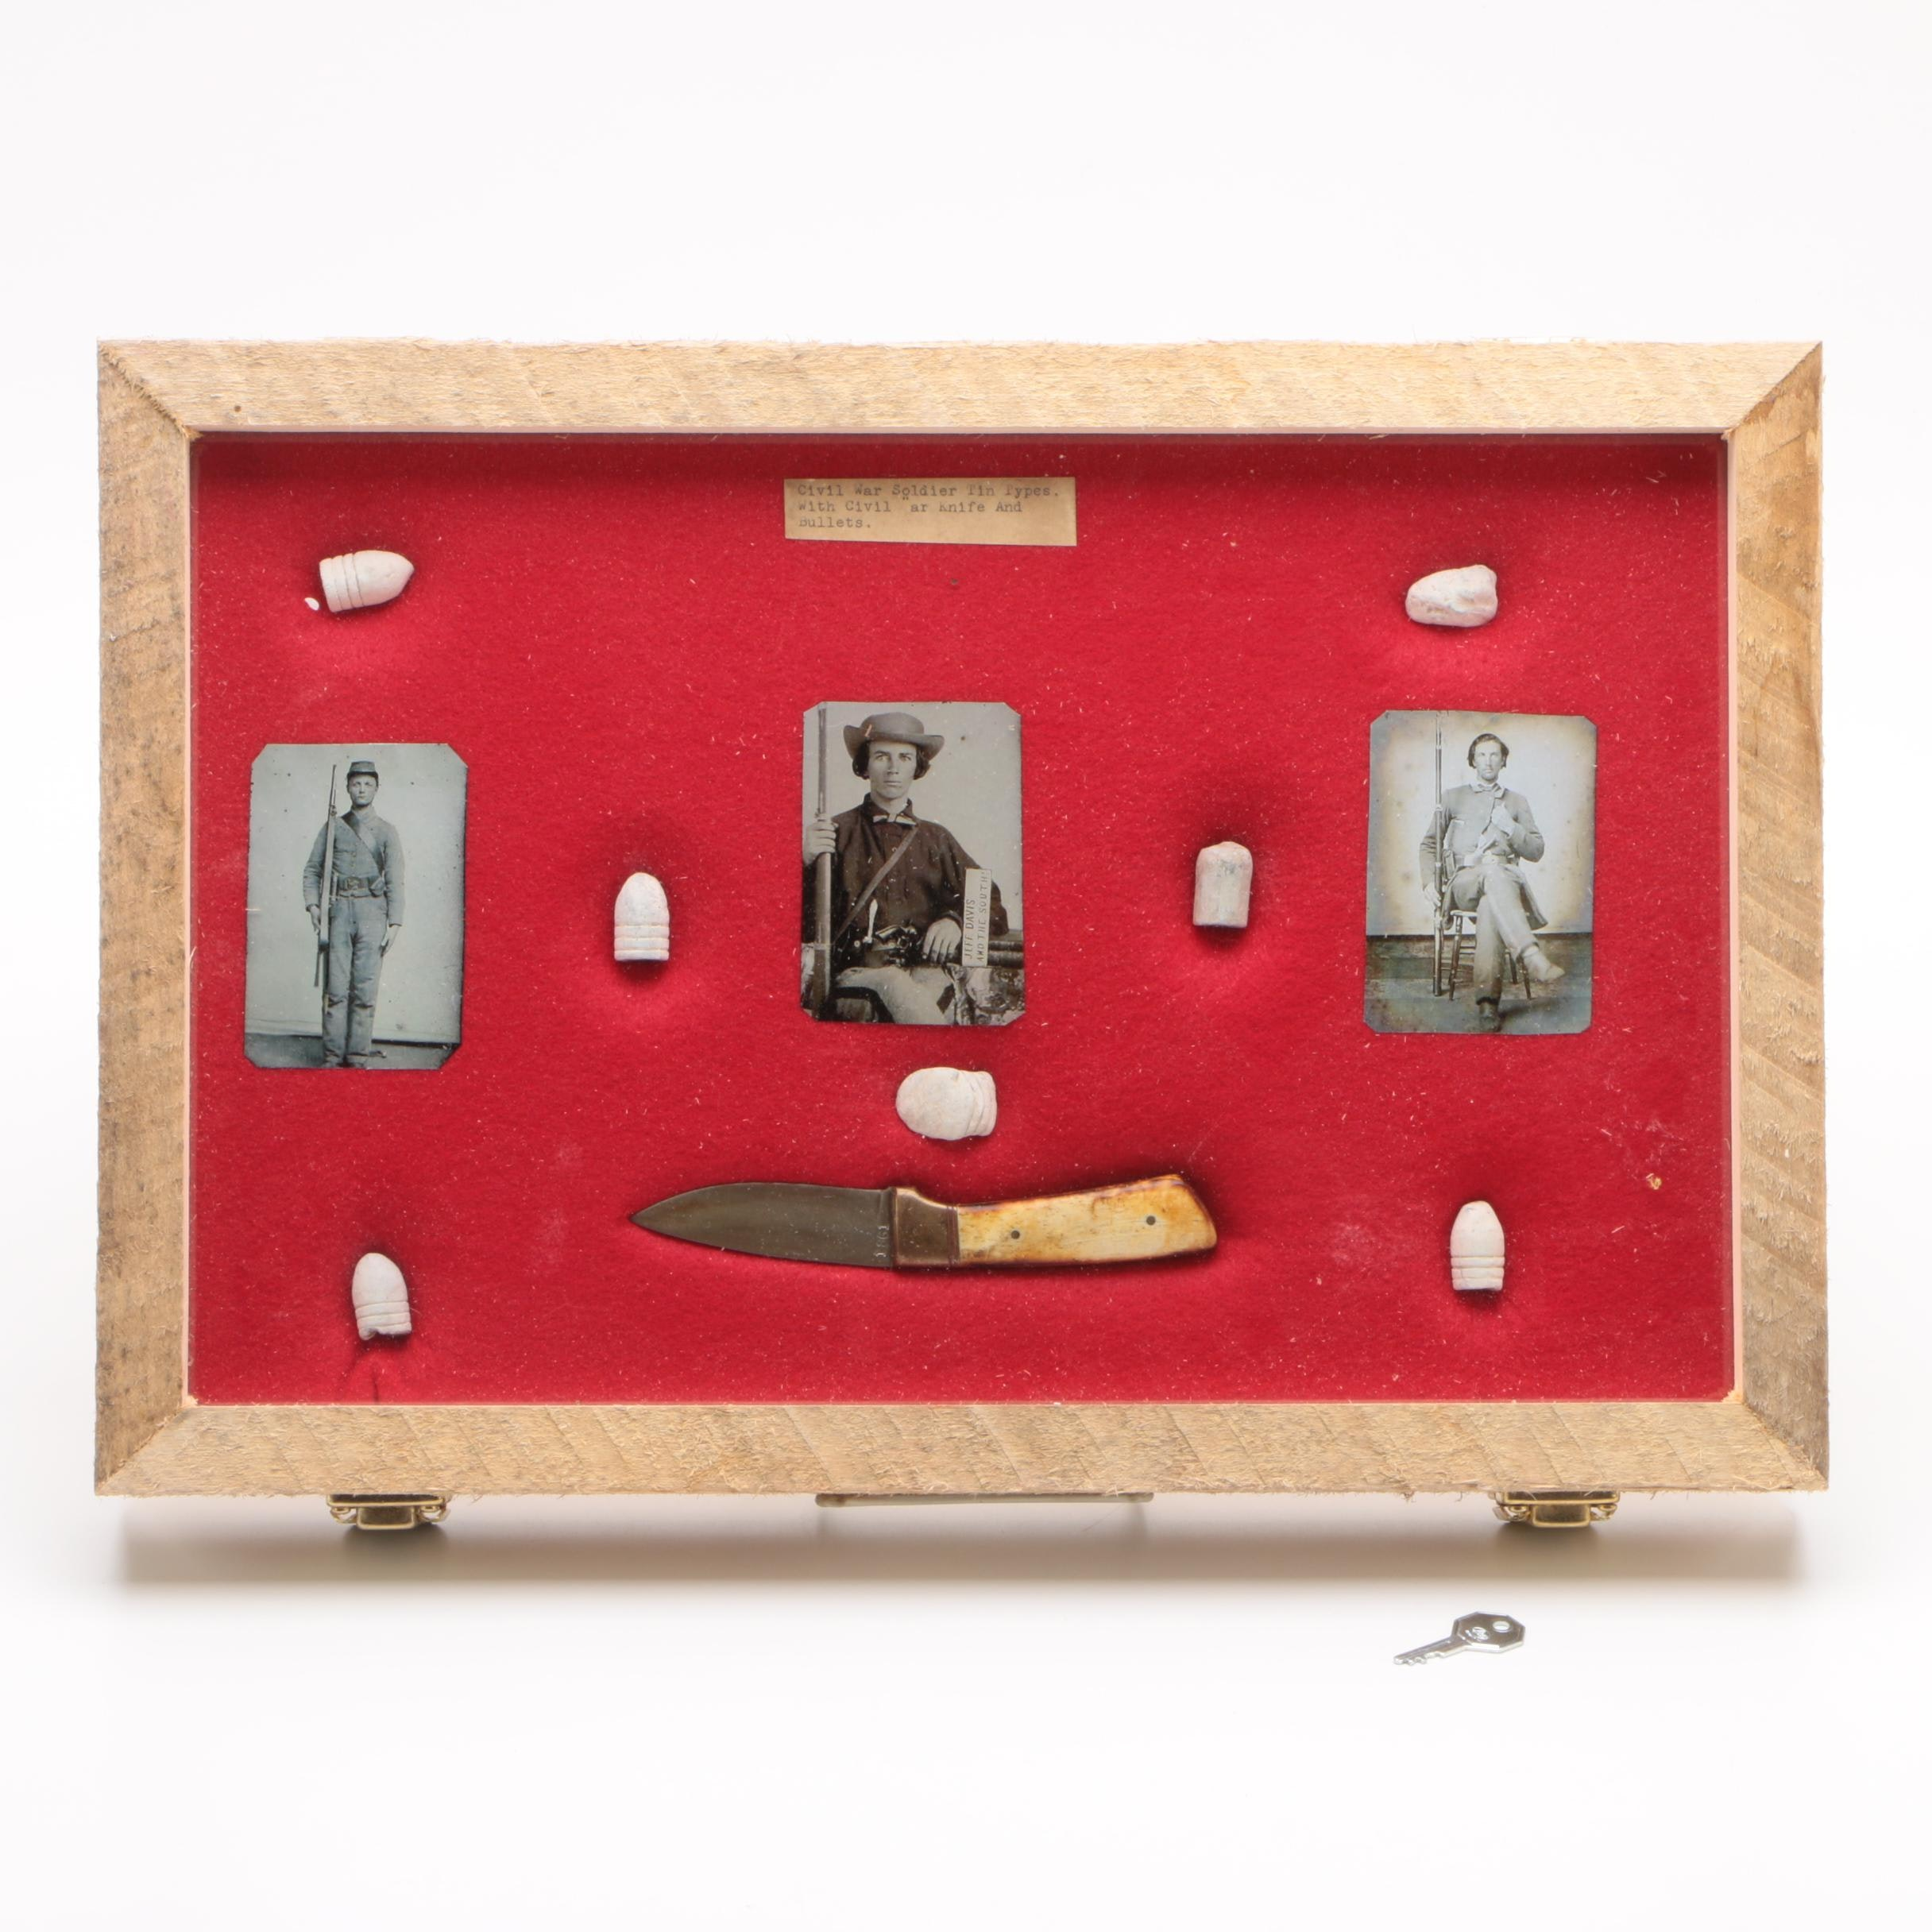 Shadowbox including Replica Civil War Soldier Tintypes with Knife and Bullets